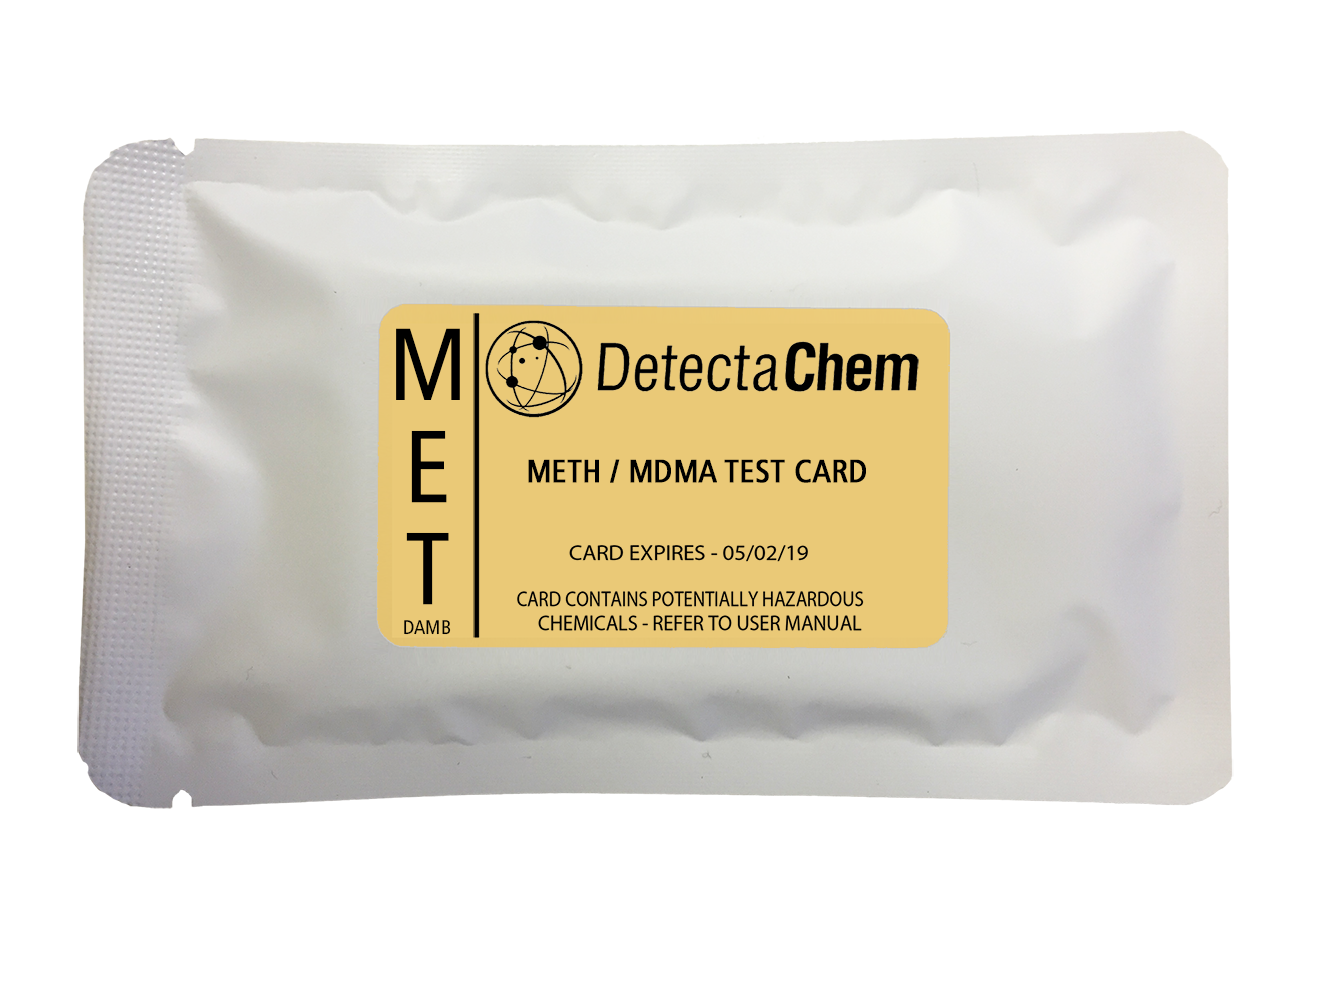 DetectaChem Meth/MDMA Detection Card (Box of 100)